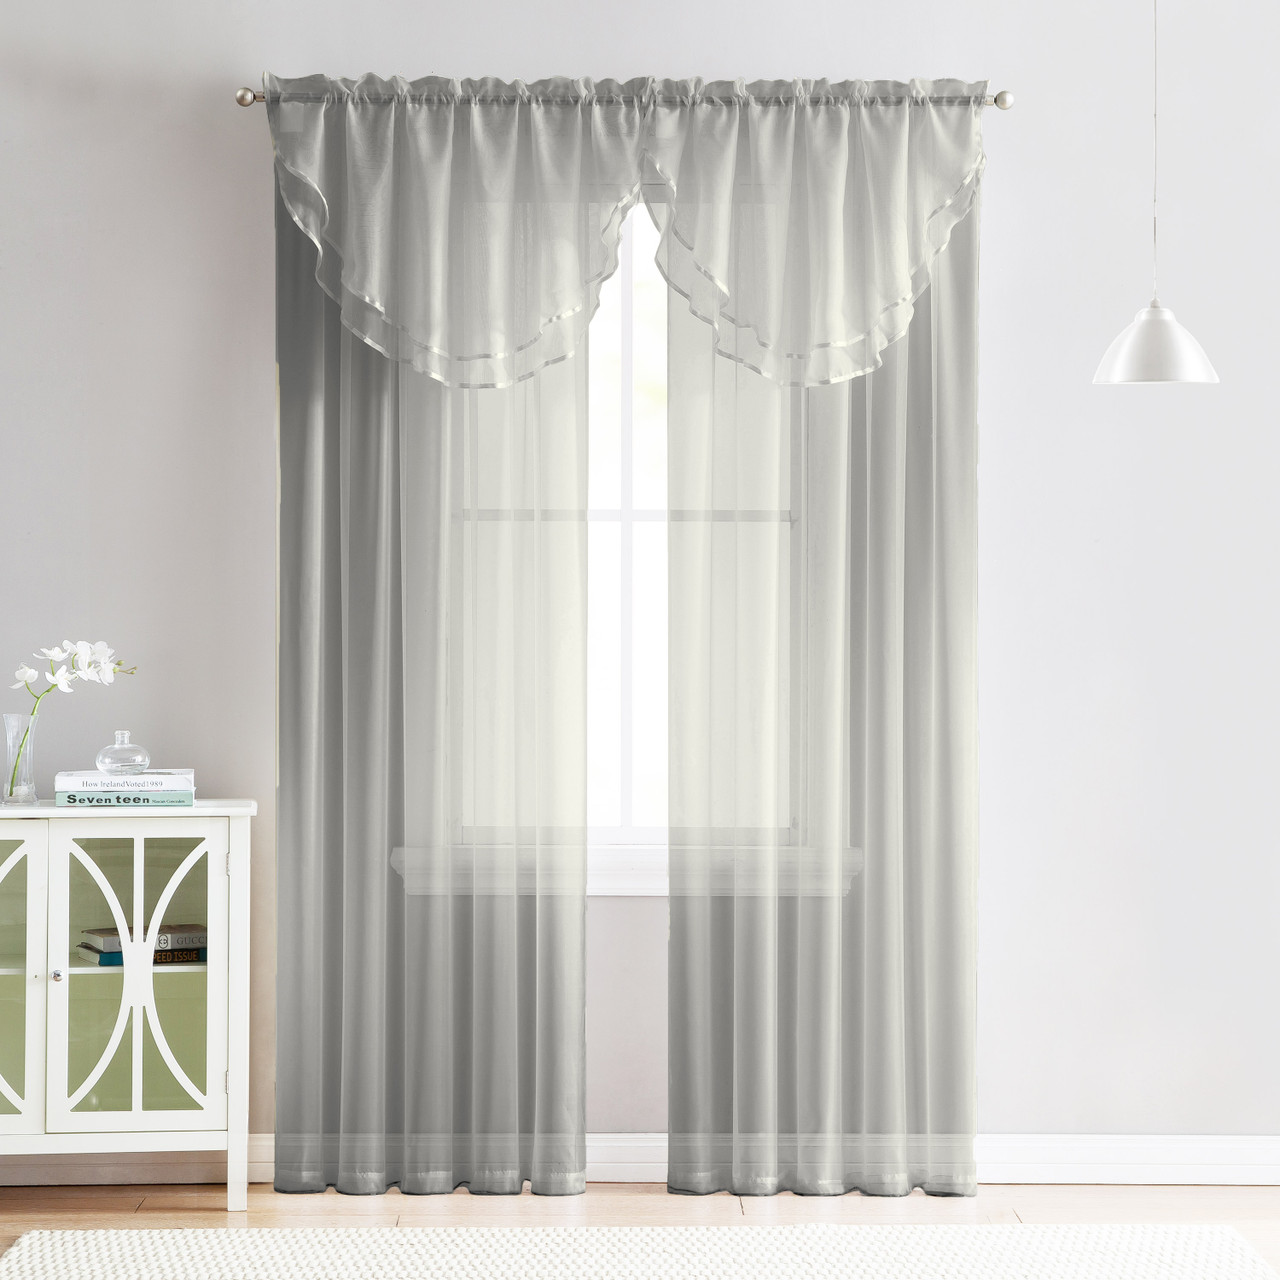 4 Piece Sheer Window Curtain Set For Living Room Dining Room Bay Windows 2 Voile Valance Curtains And 2 Panels 90 In Long Silver